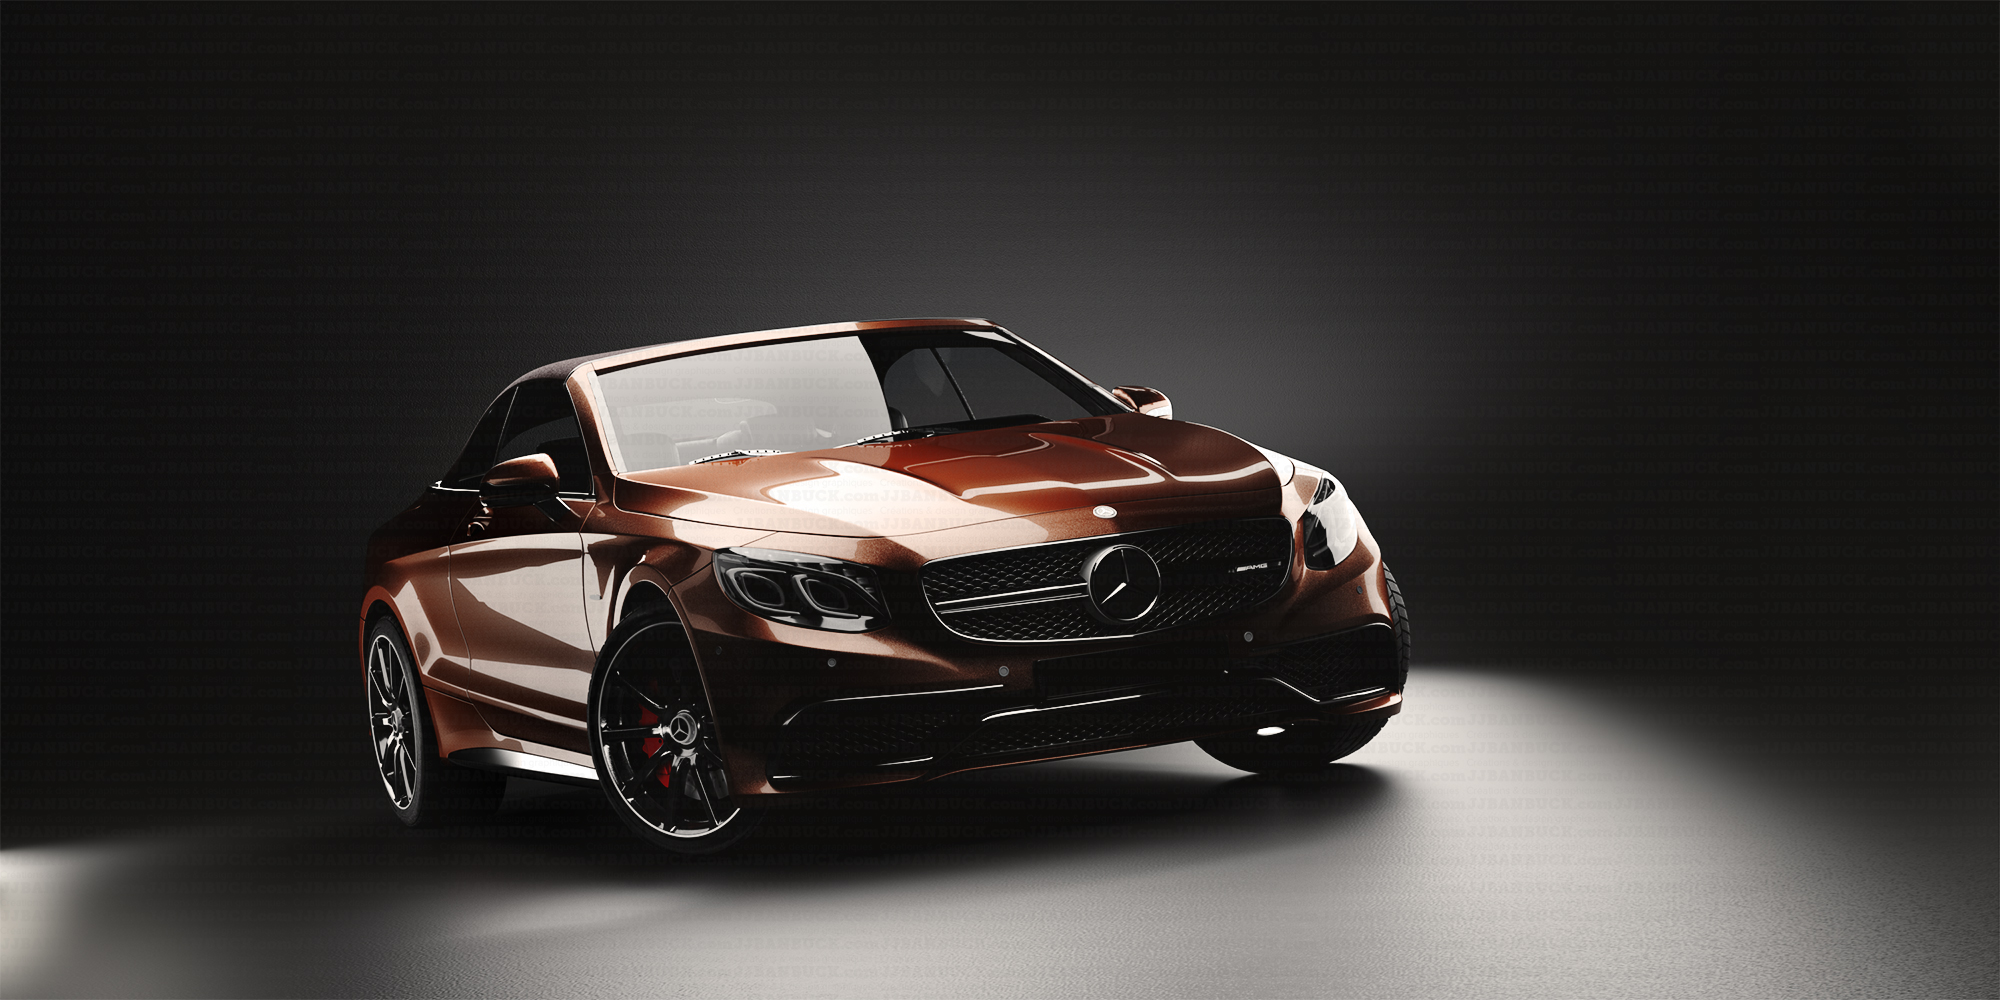 mercedes-amg-3d-automotive-render-cg-jjbanbuck